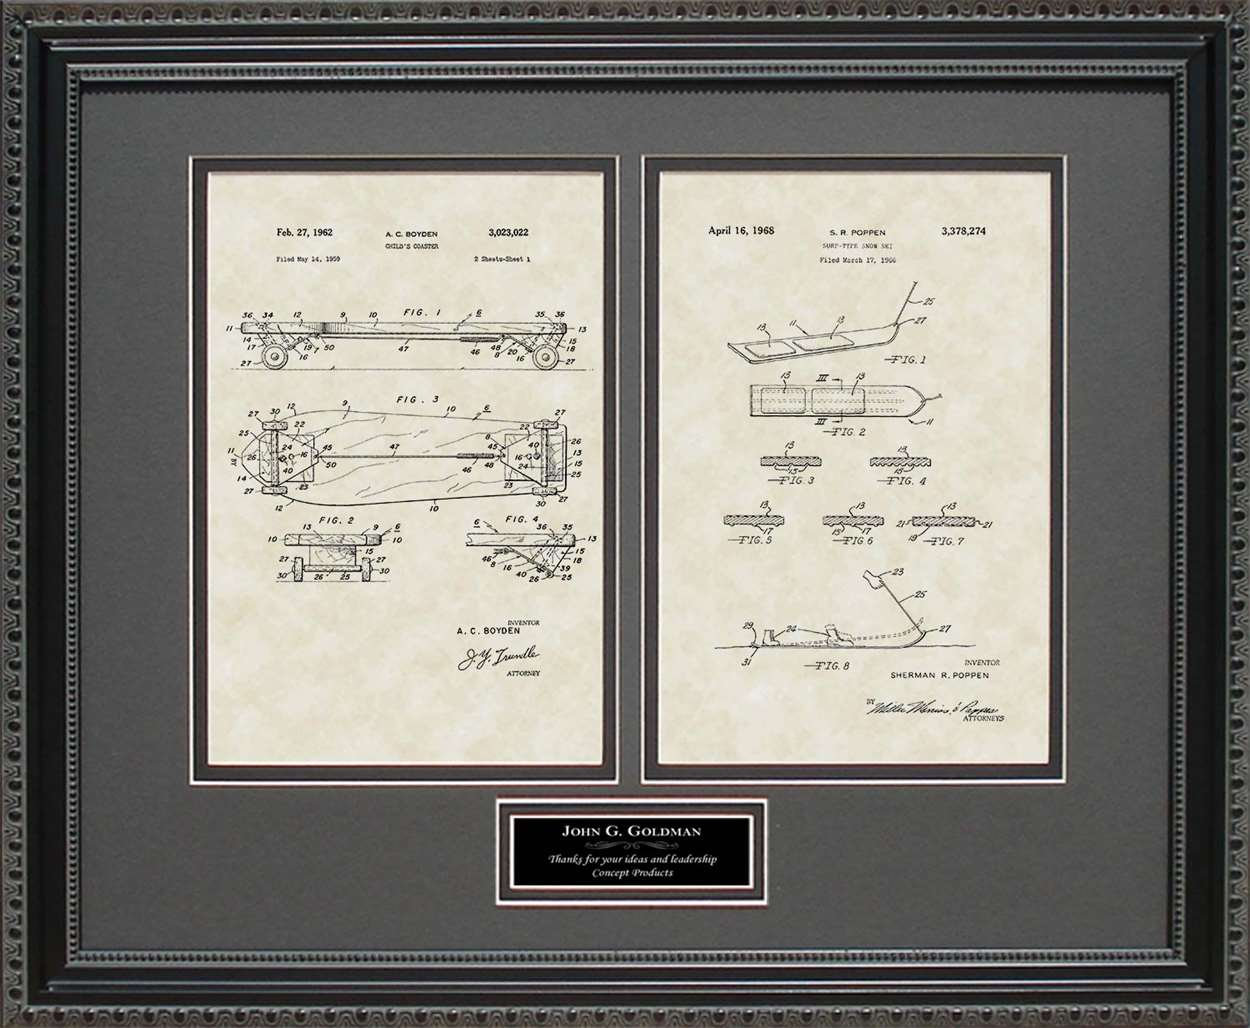 Personalized Skateboard & Snowboard Patents, 16x20